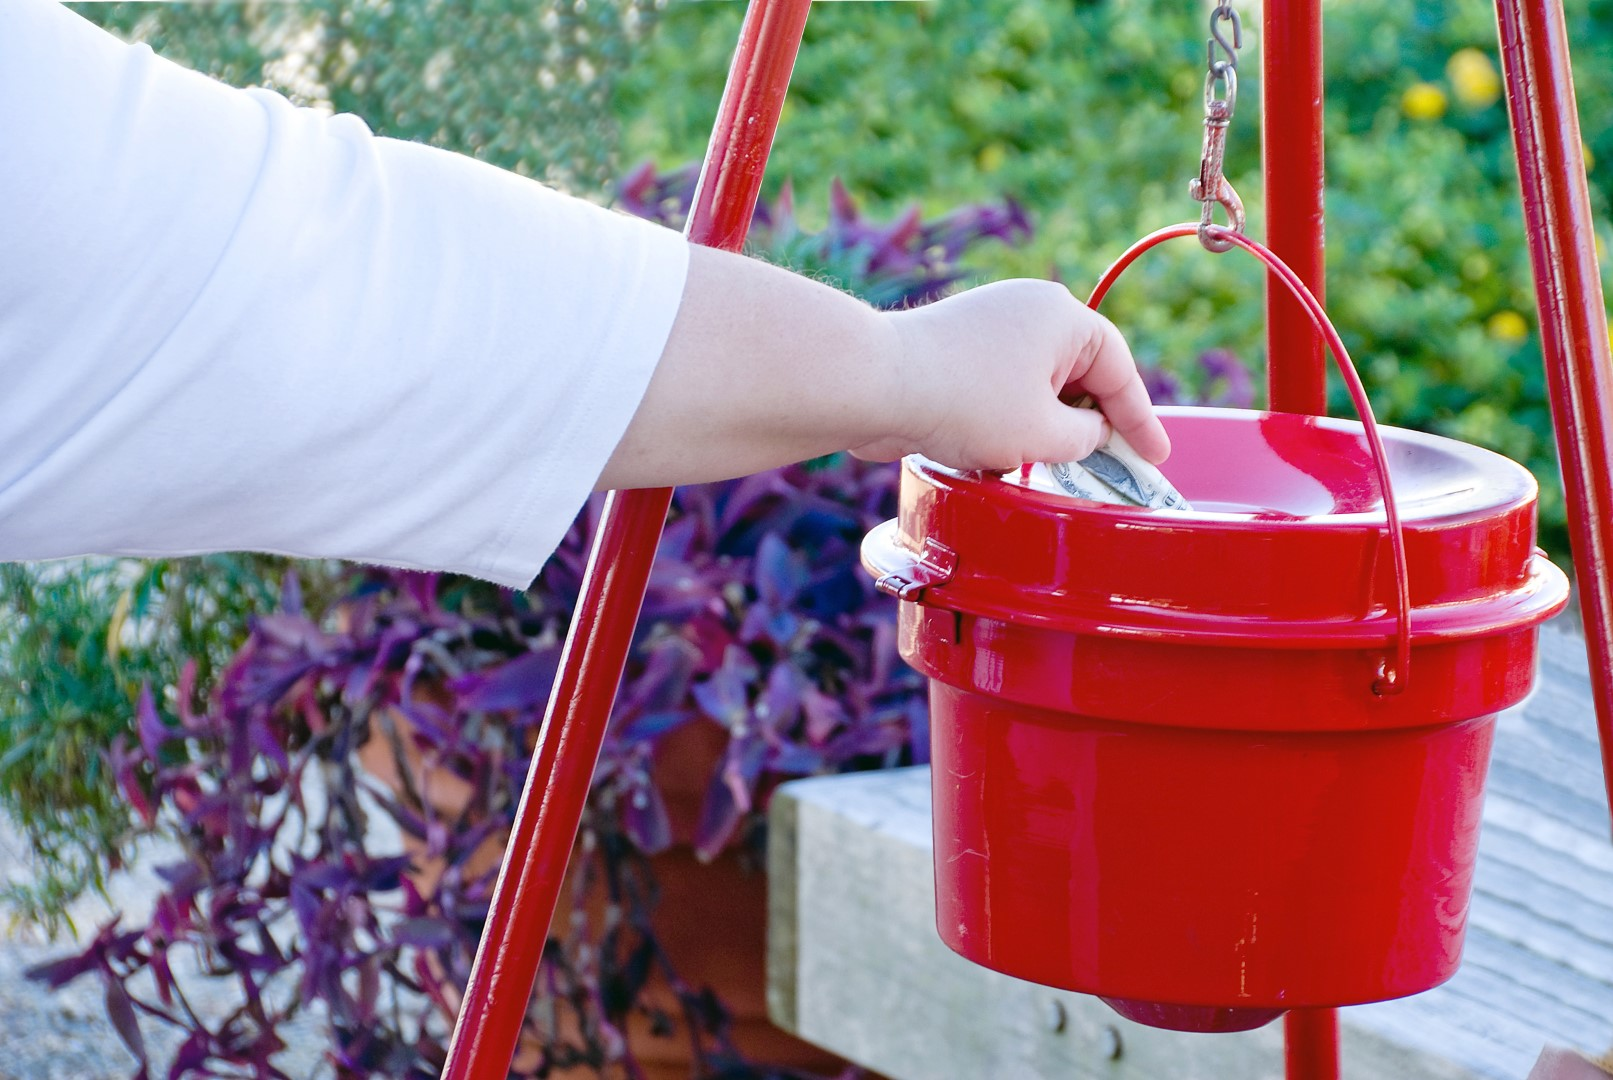 salvation-army-kettle-Large.jpg